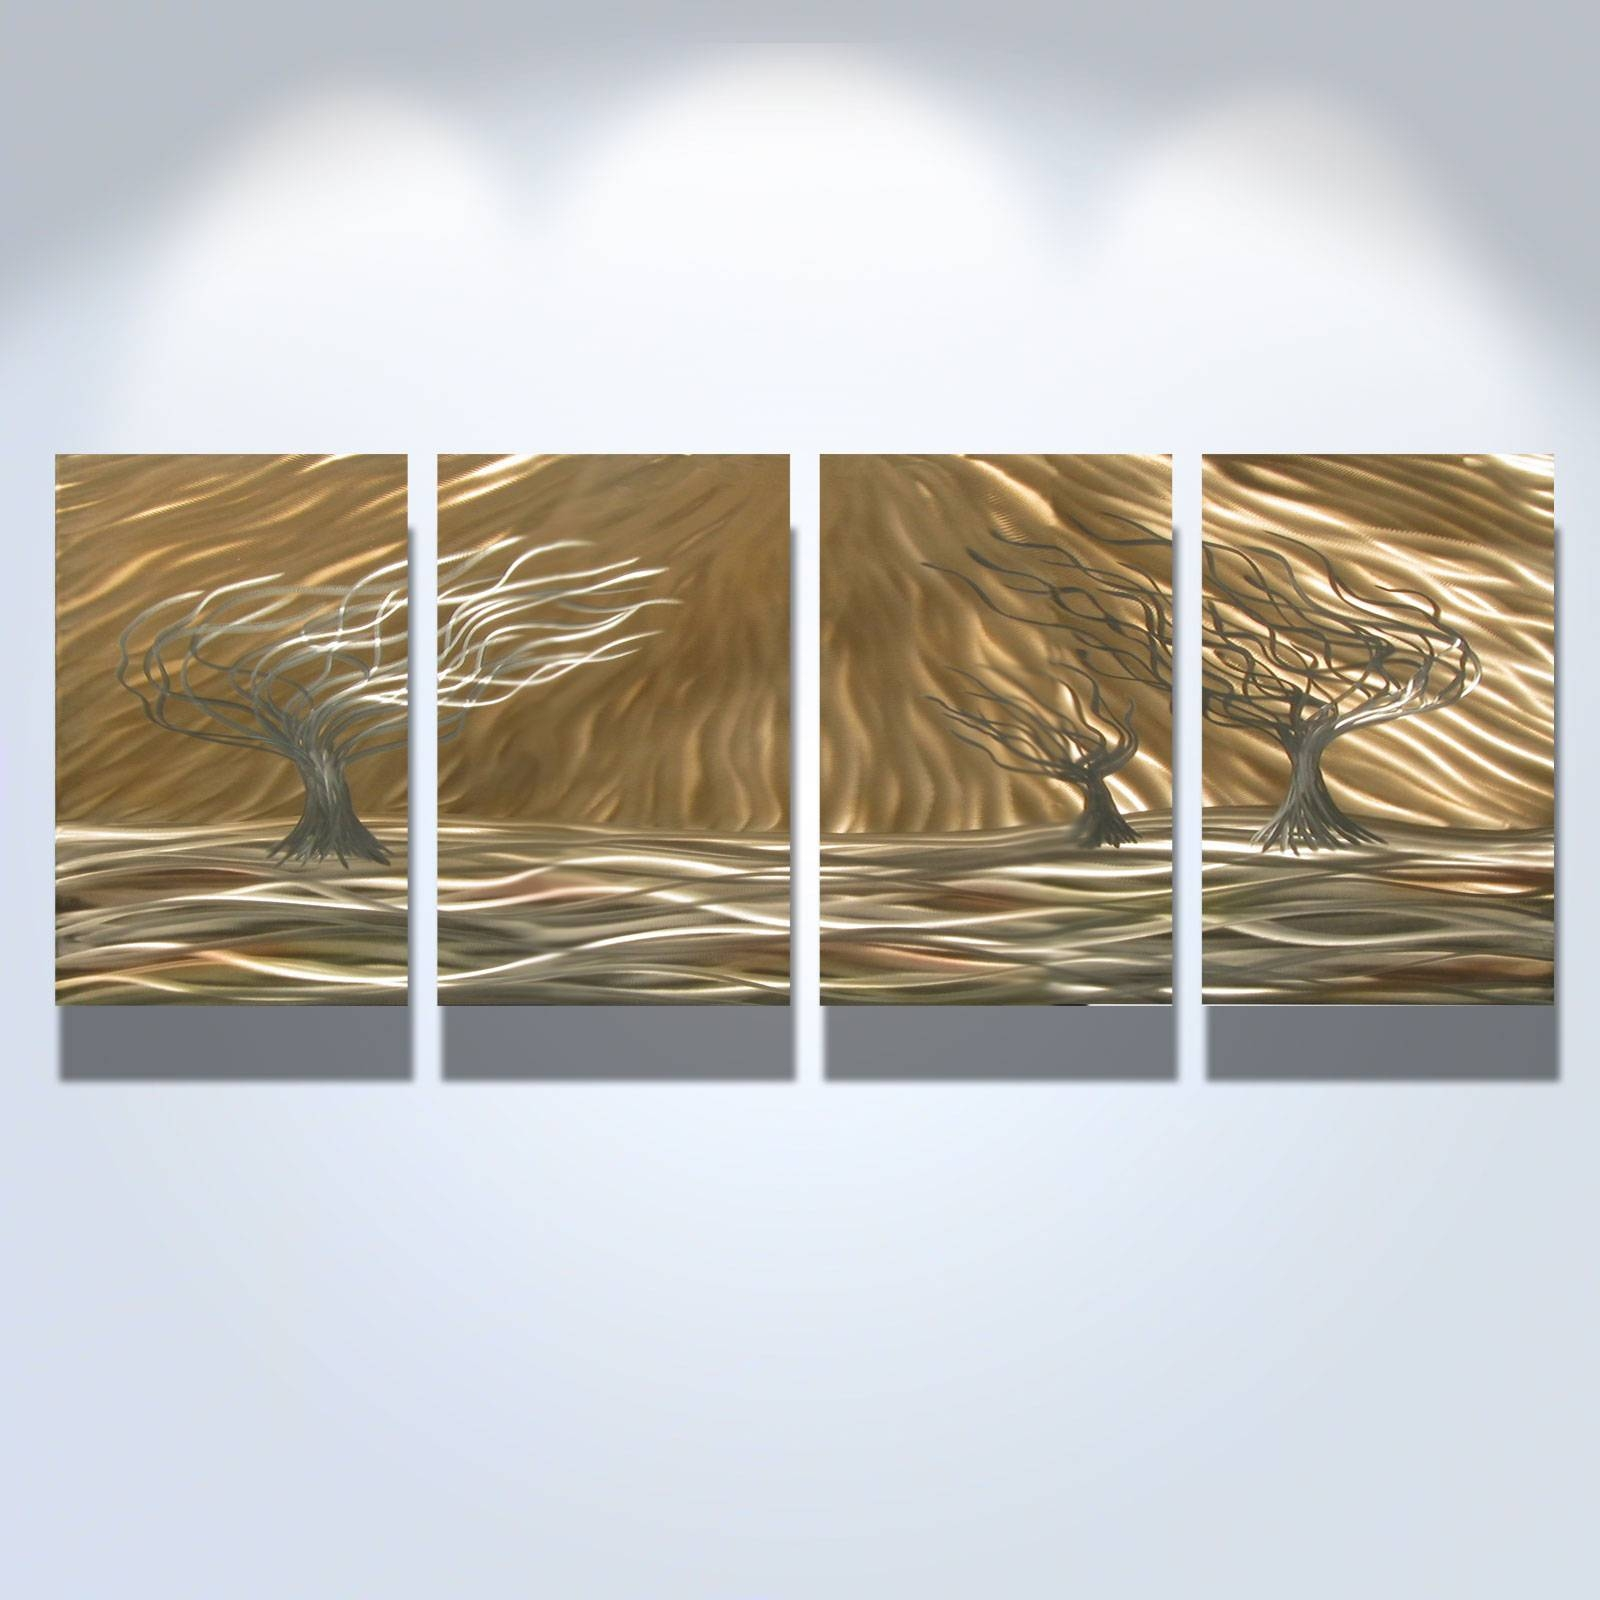 3 Trees 4 Panel – Abstract Metal Wall Art Contemporary Modern Inside 2017 Contemporary Metal Wall Art Decor (View 8 of 20)